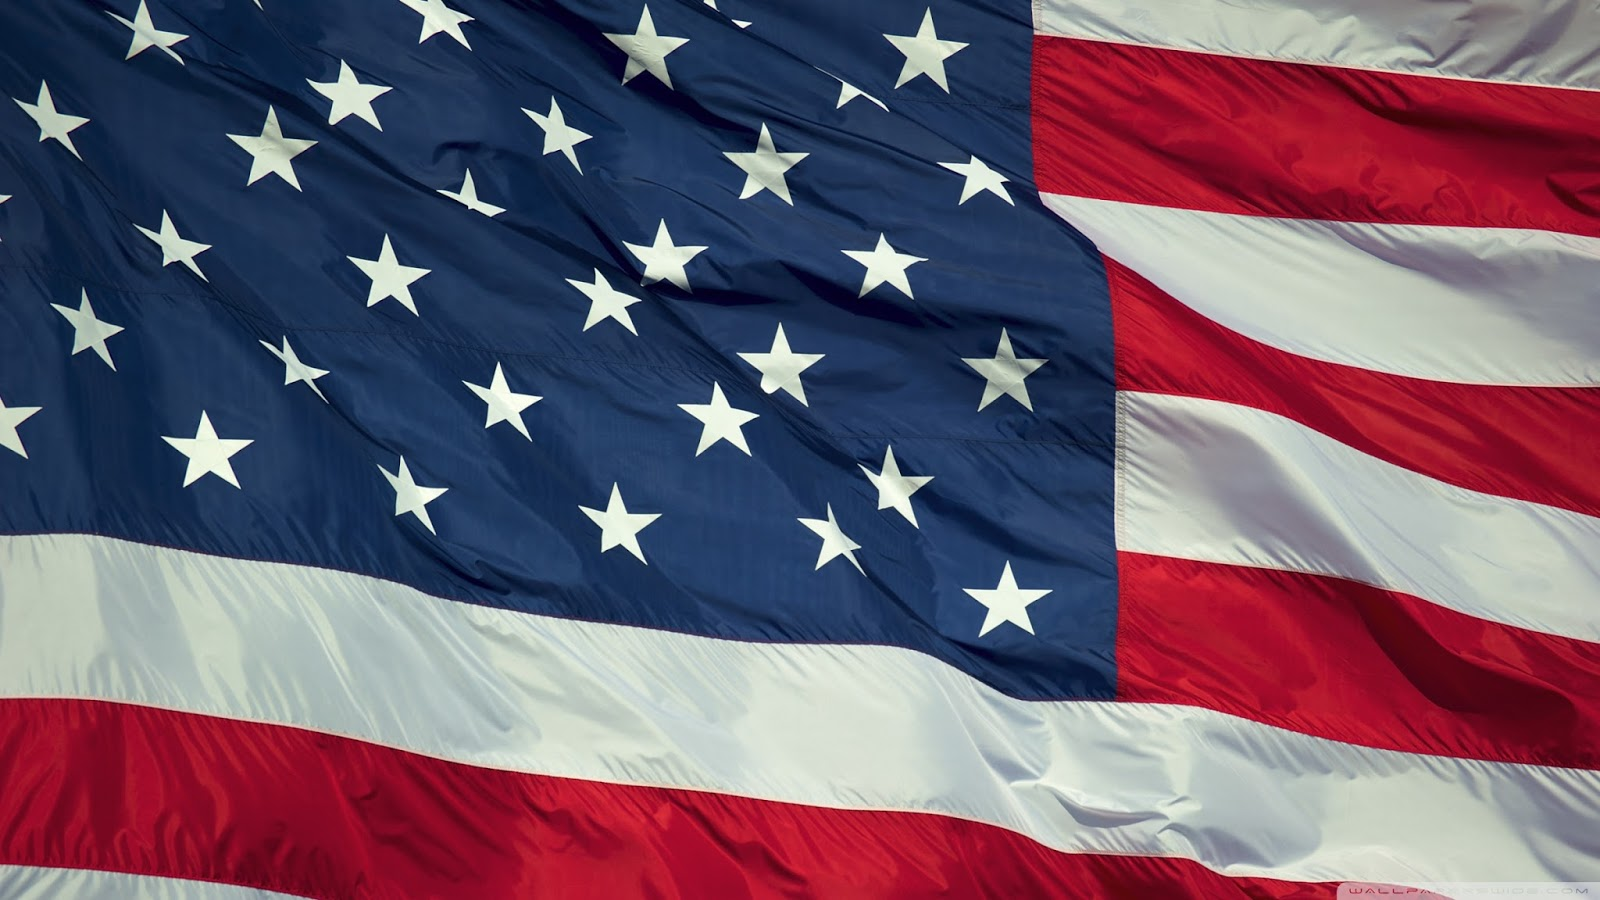 american flag hd wallpaper old american flag with black background 1600x900